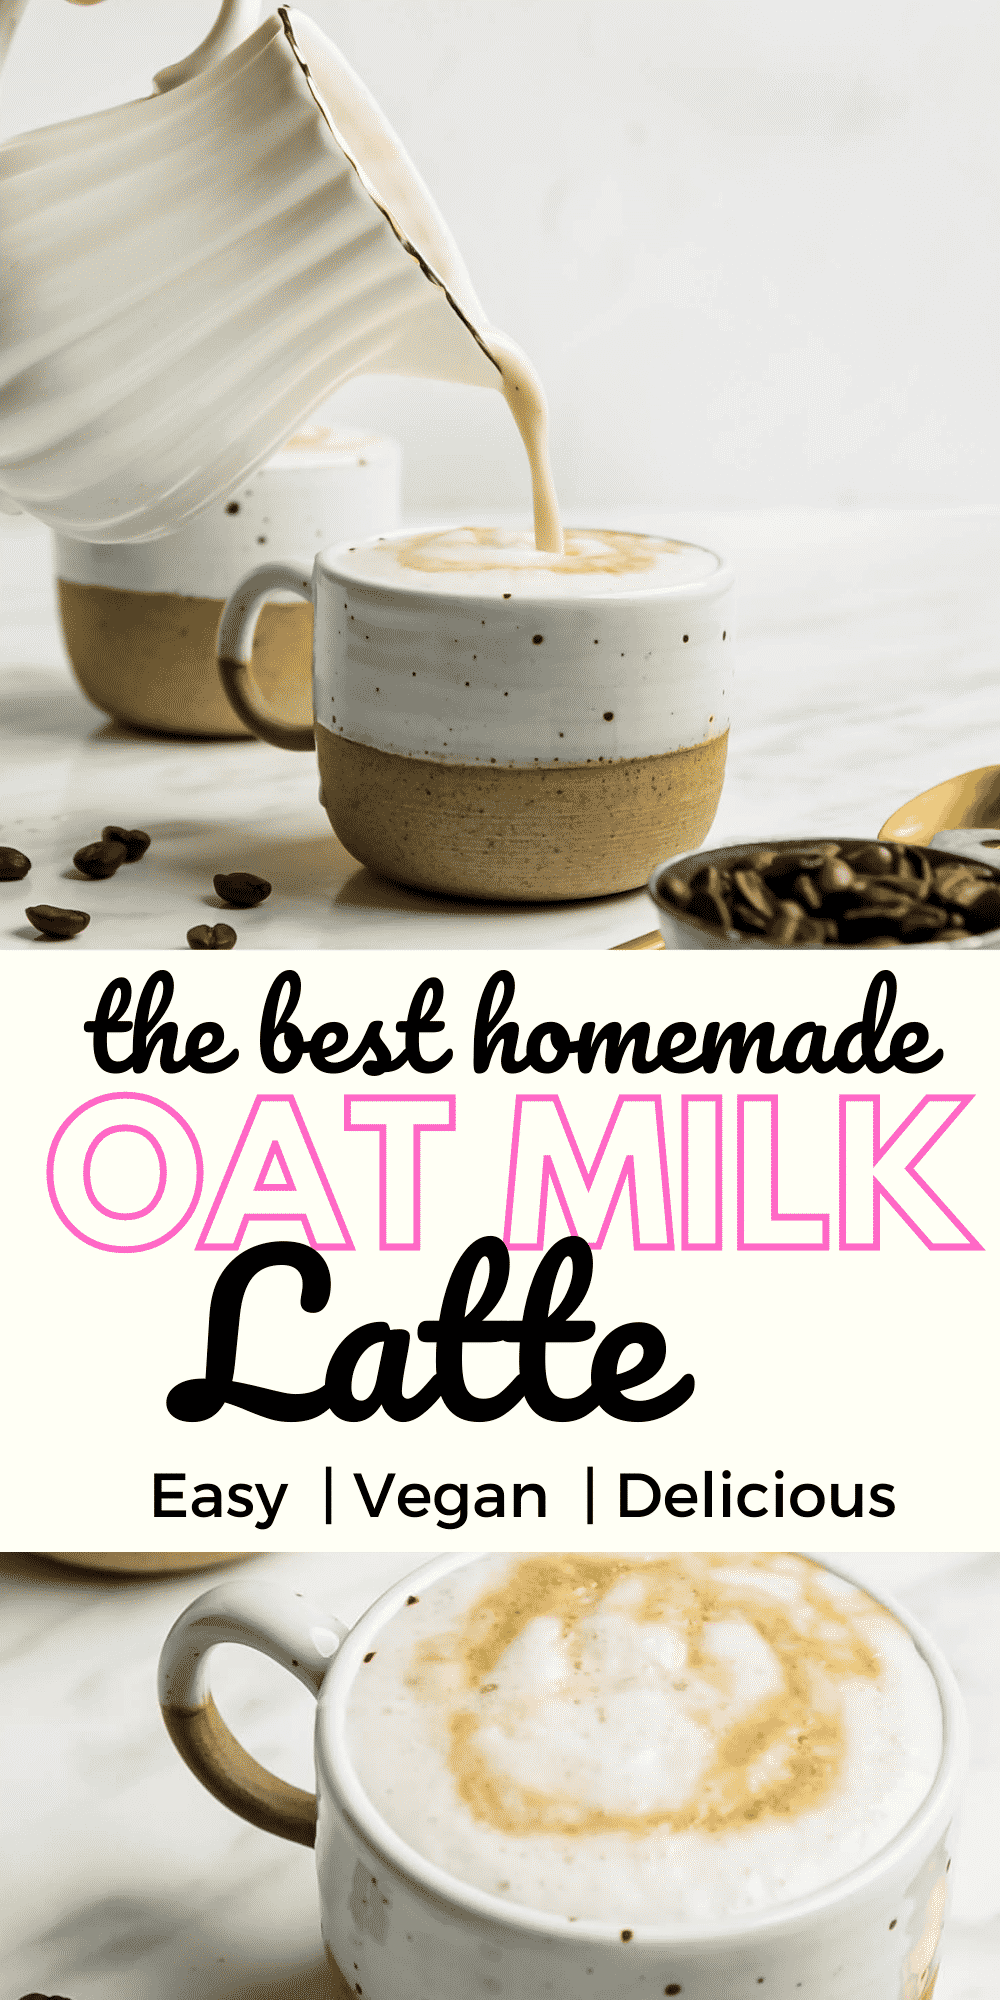 Oat Milk Latte is a delicious, easy to make morning drink that will make you feel like you are drinking a fancy coffeeshop beverage